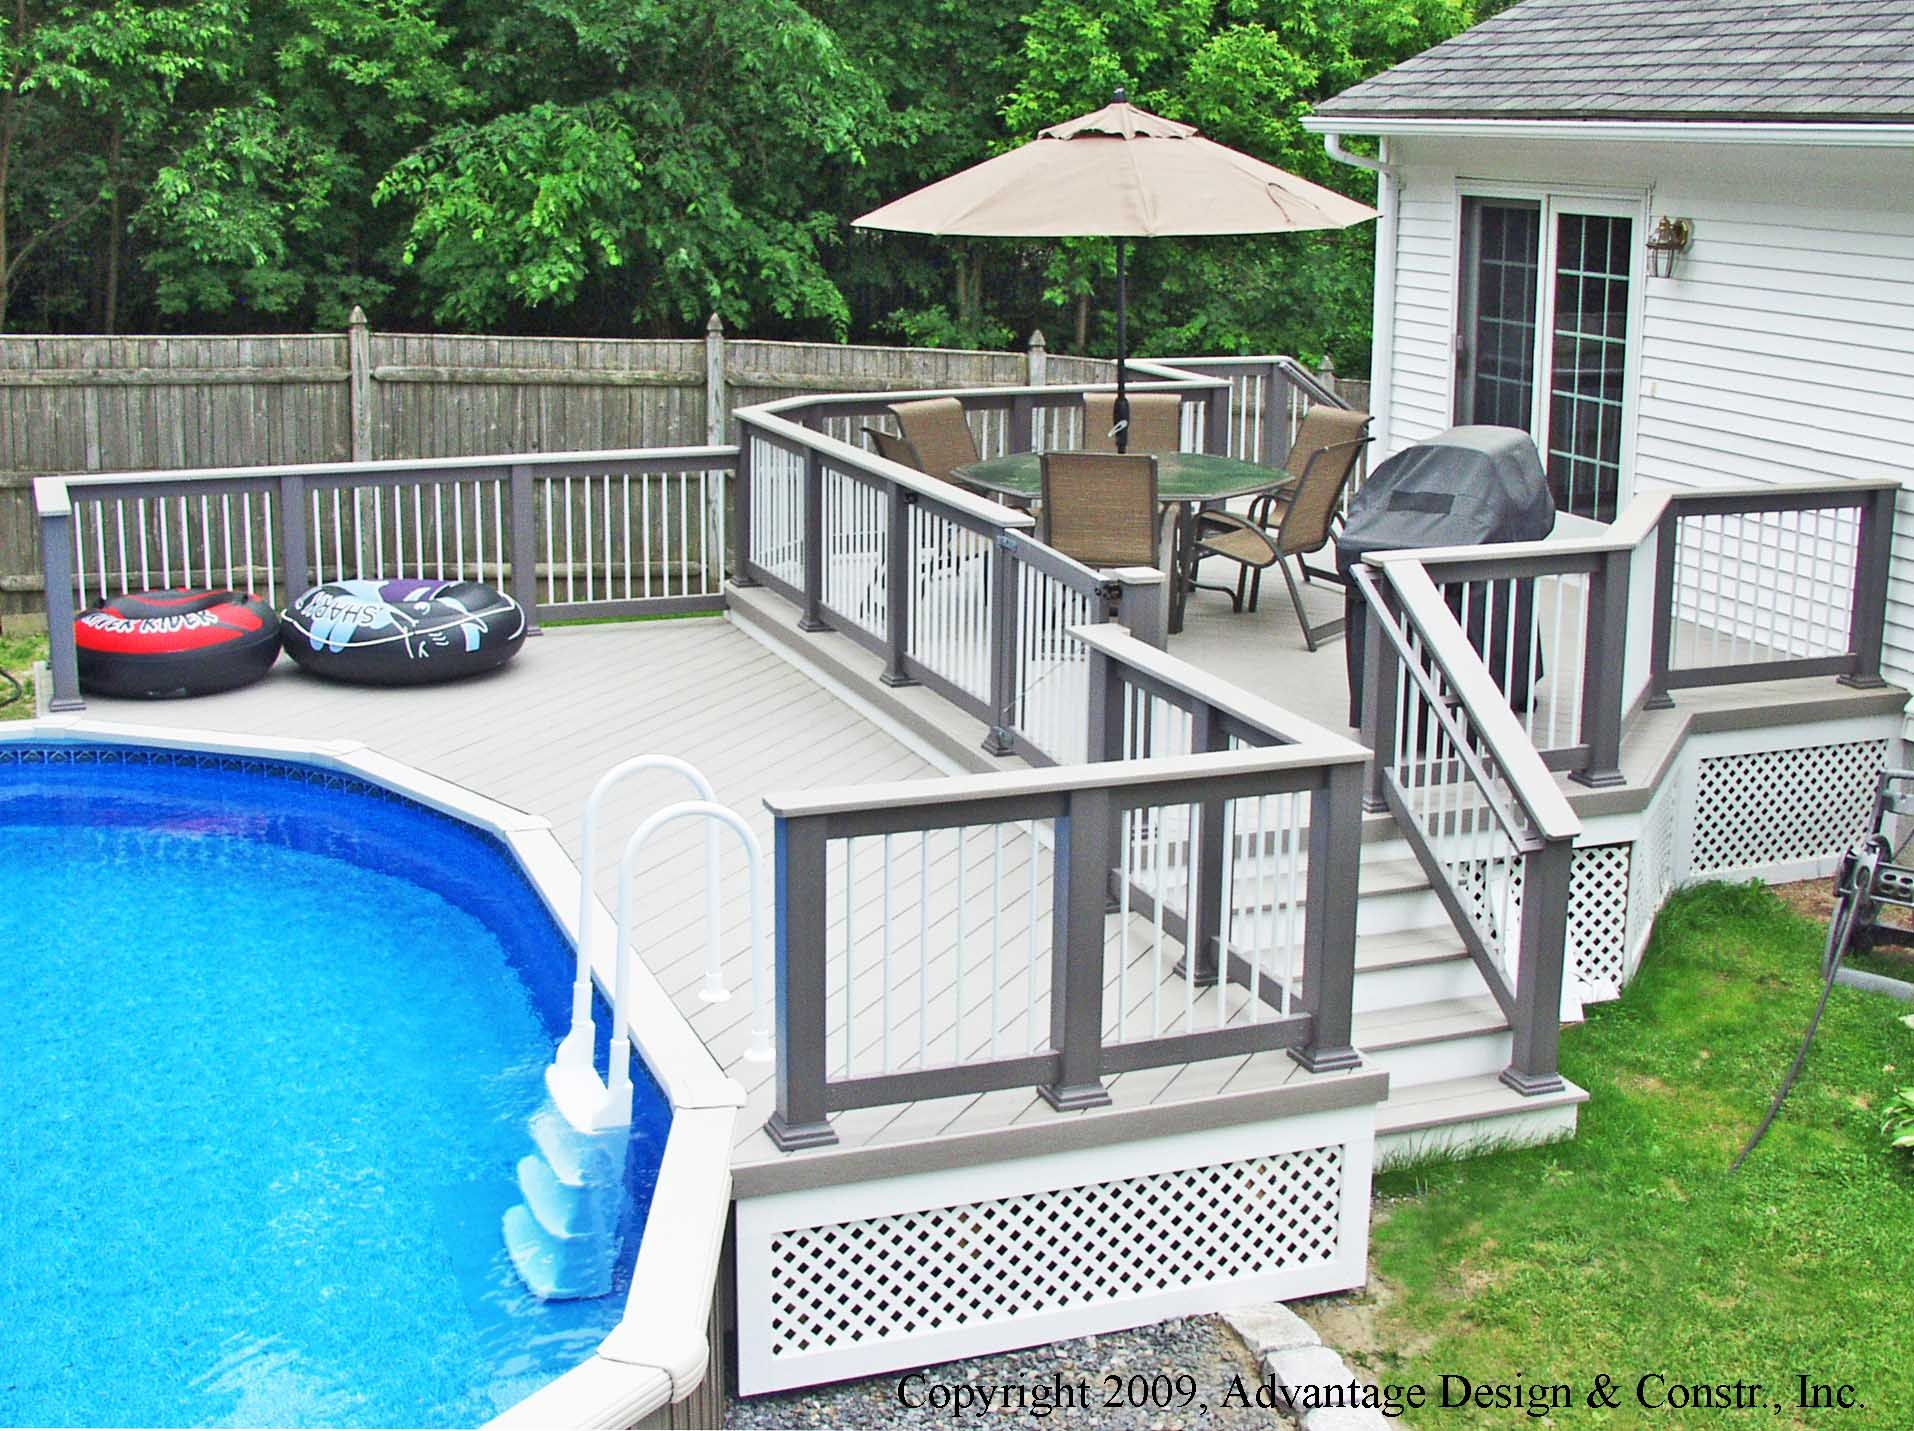 Deck Design Ideas For Above Ground Pools deck design ideas for above ground pools above ground pool deck ideas Find This Pin And More On Home Pool Attractive Above Ground Pool Deck